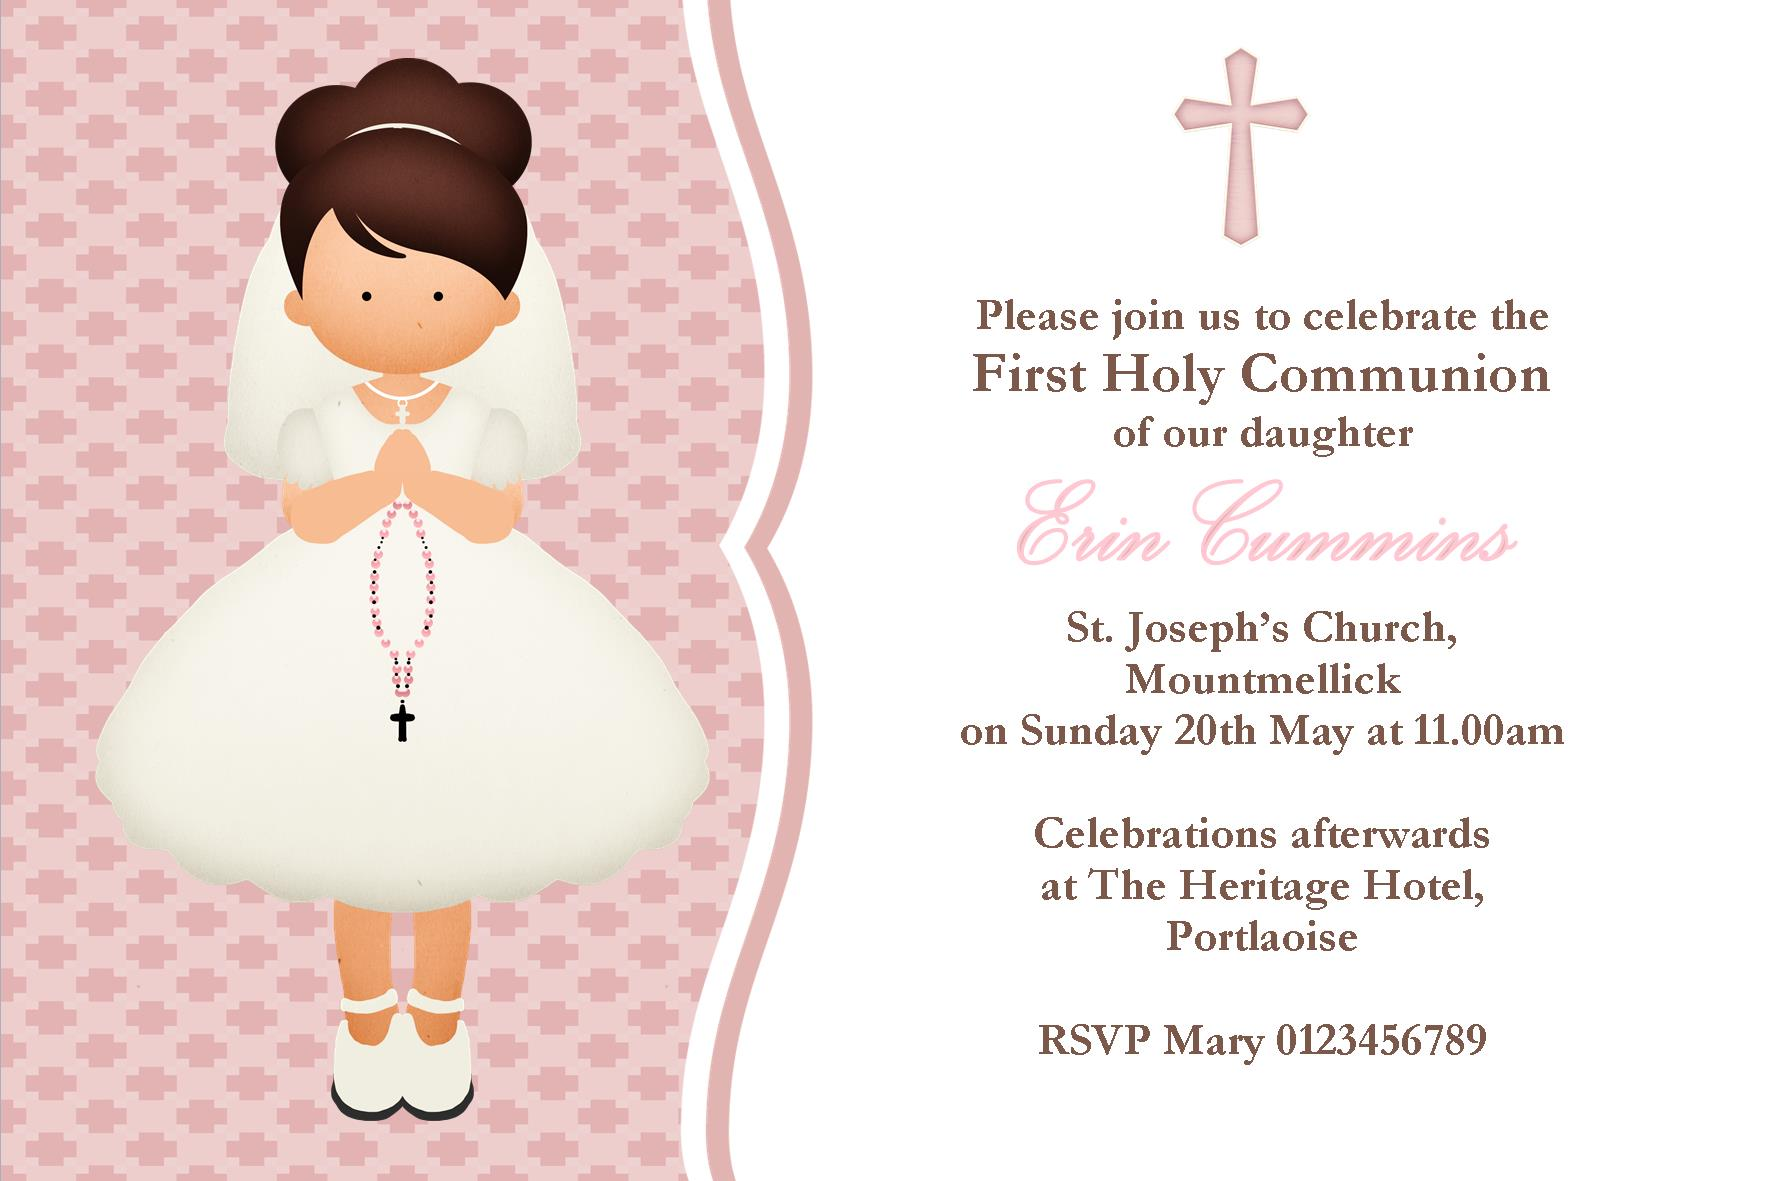 Personalised first communion invitations girl new design 3 kristyandbryce Image collections